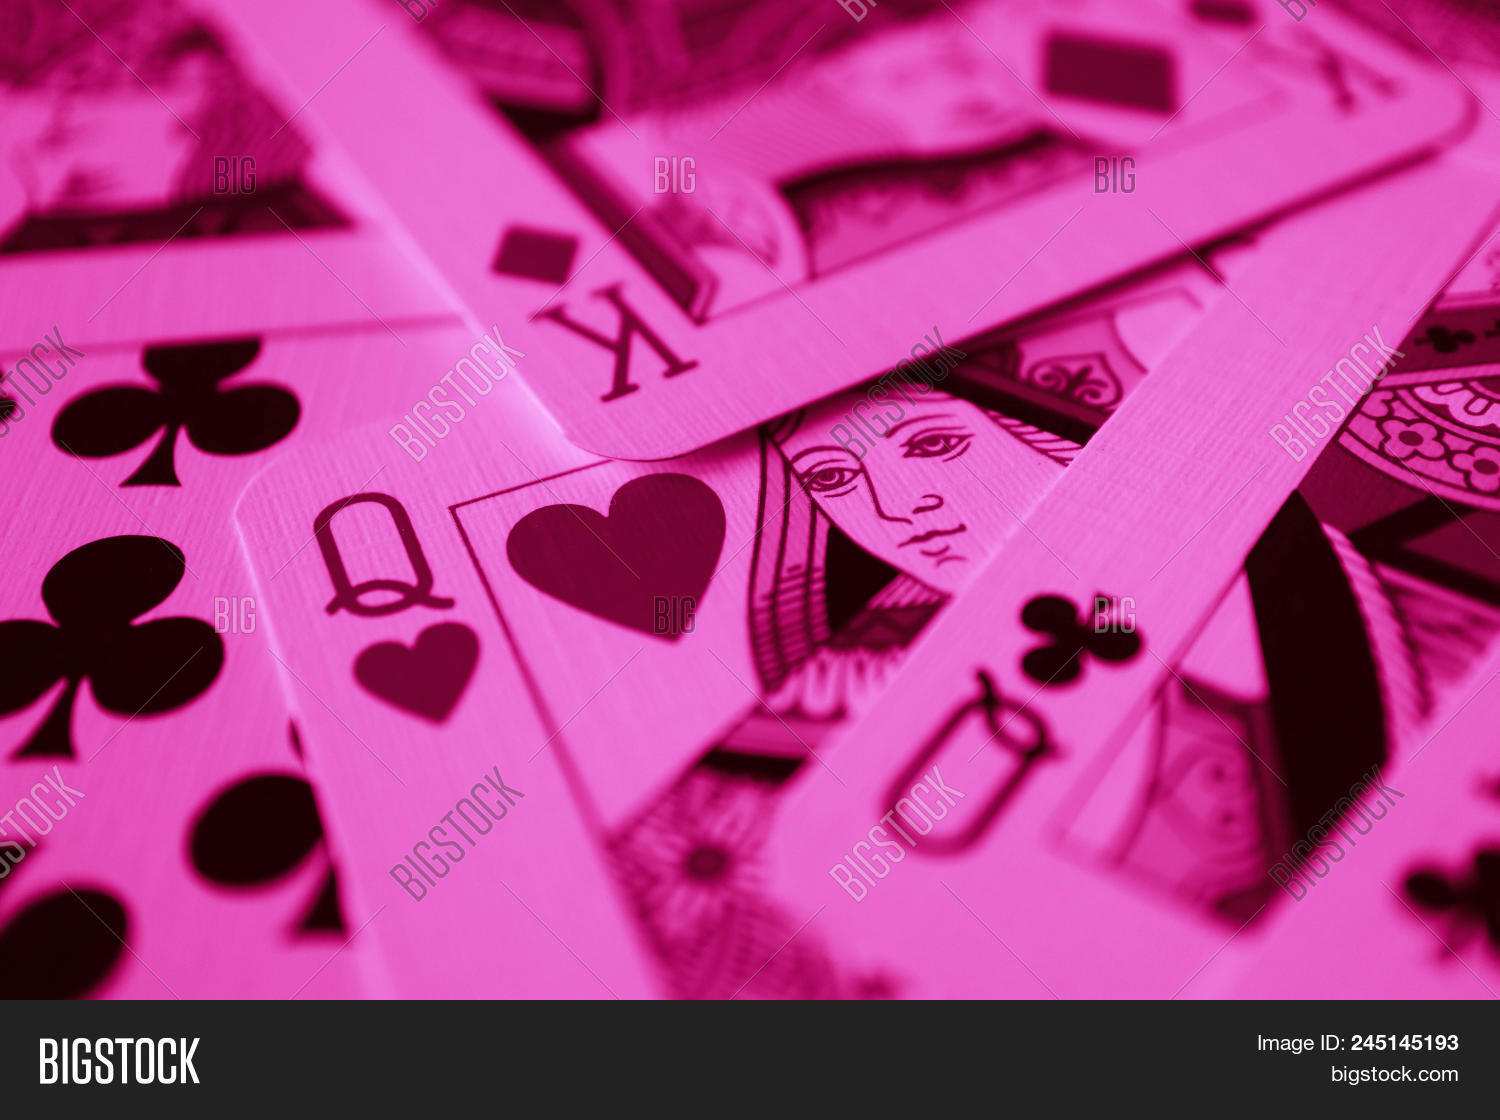 Queen Red Hearts Macro Image & Photo (Free Trial) | Bigstock